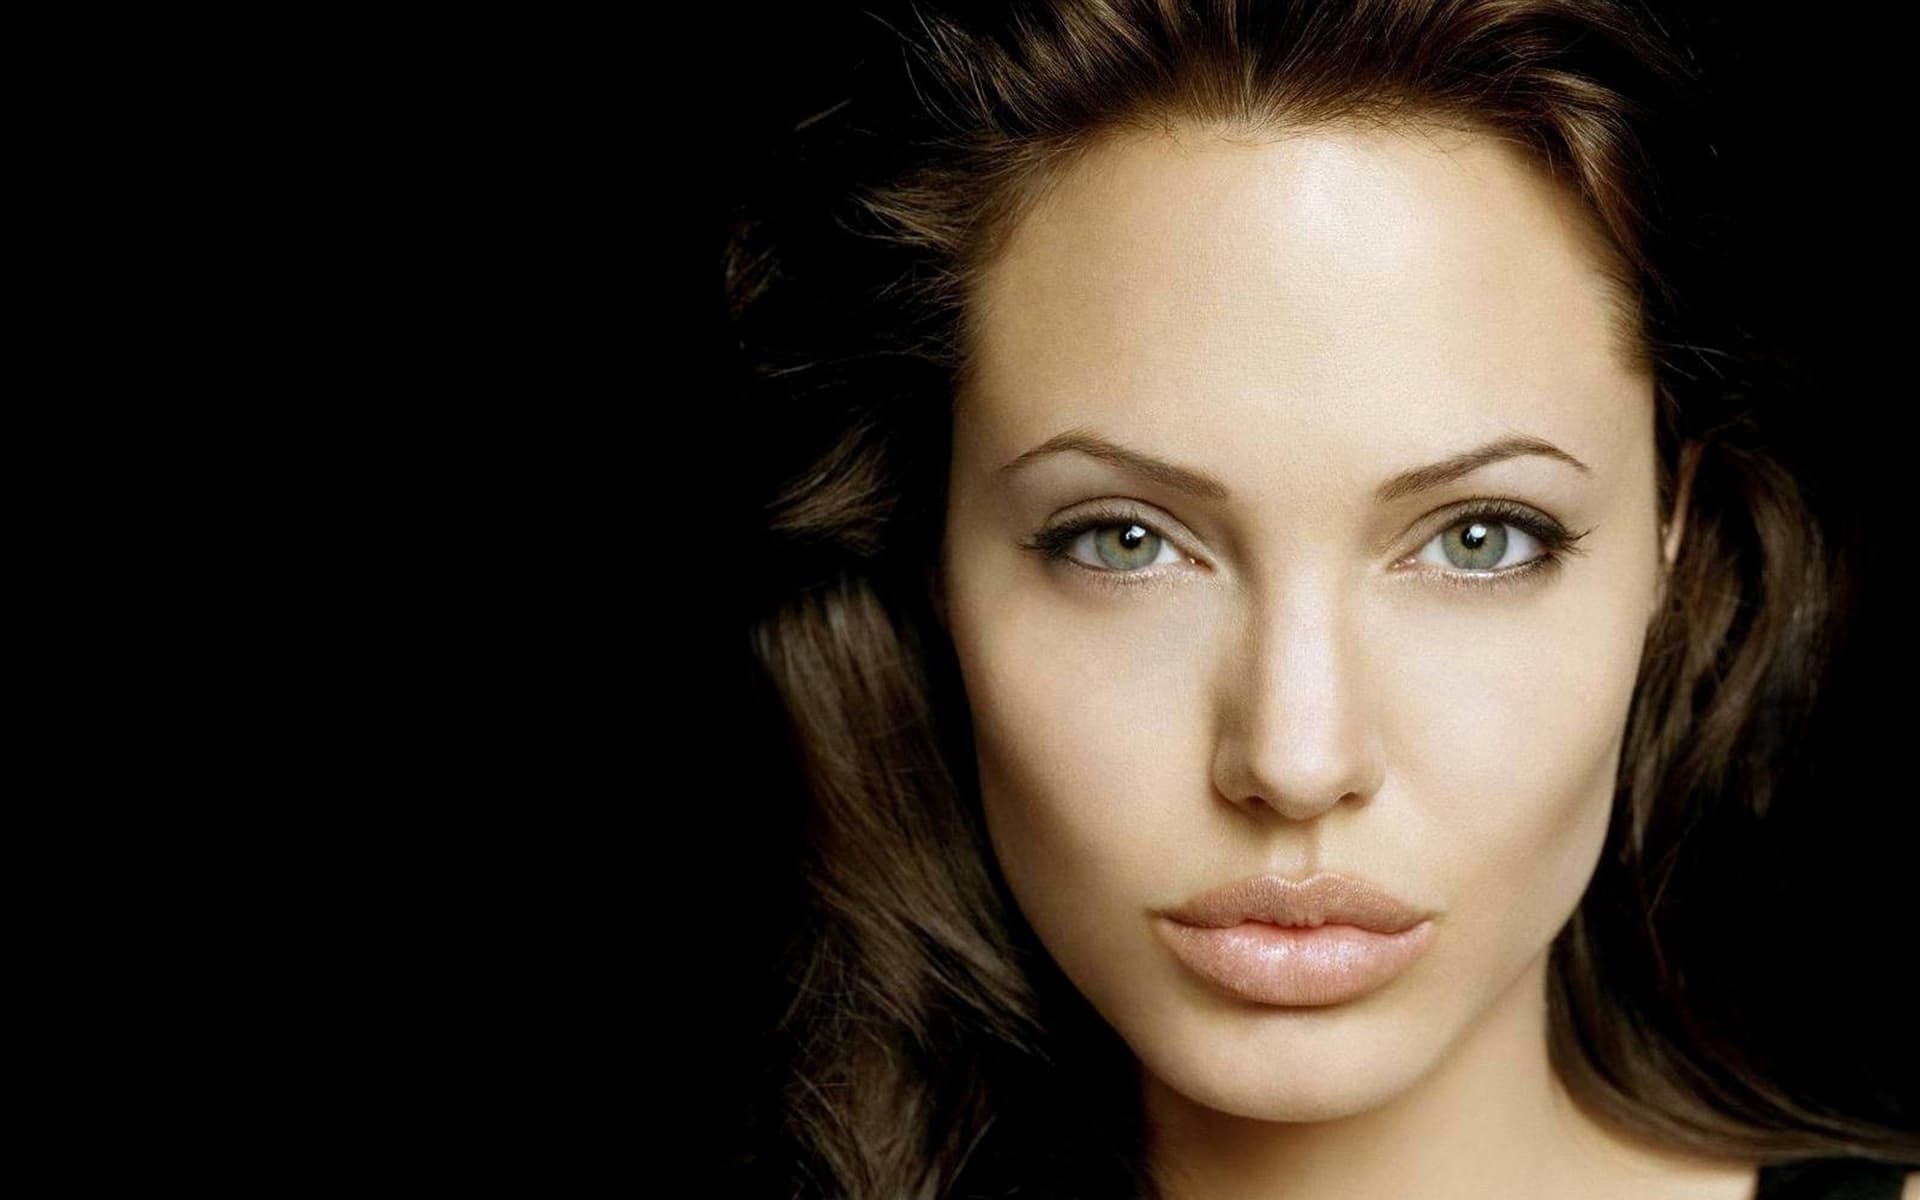 Angelina Jolie Hd Wallpapers: DriverLayer Search Engine